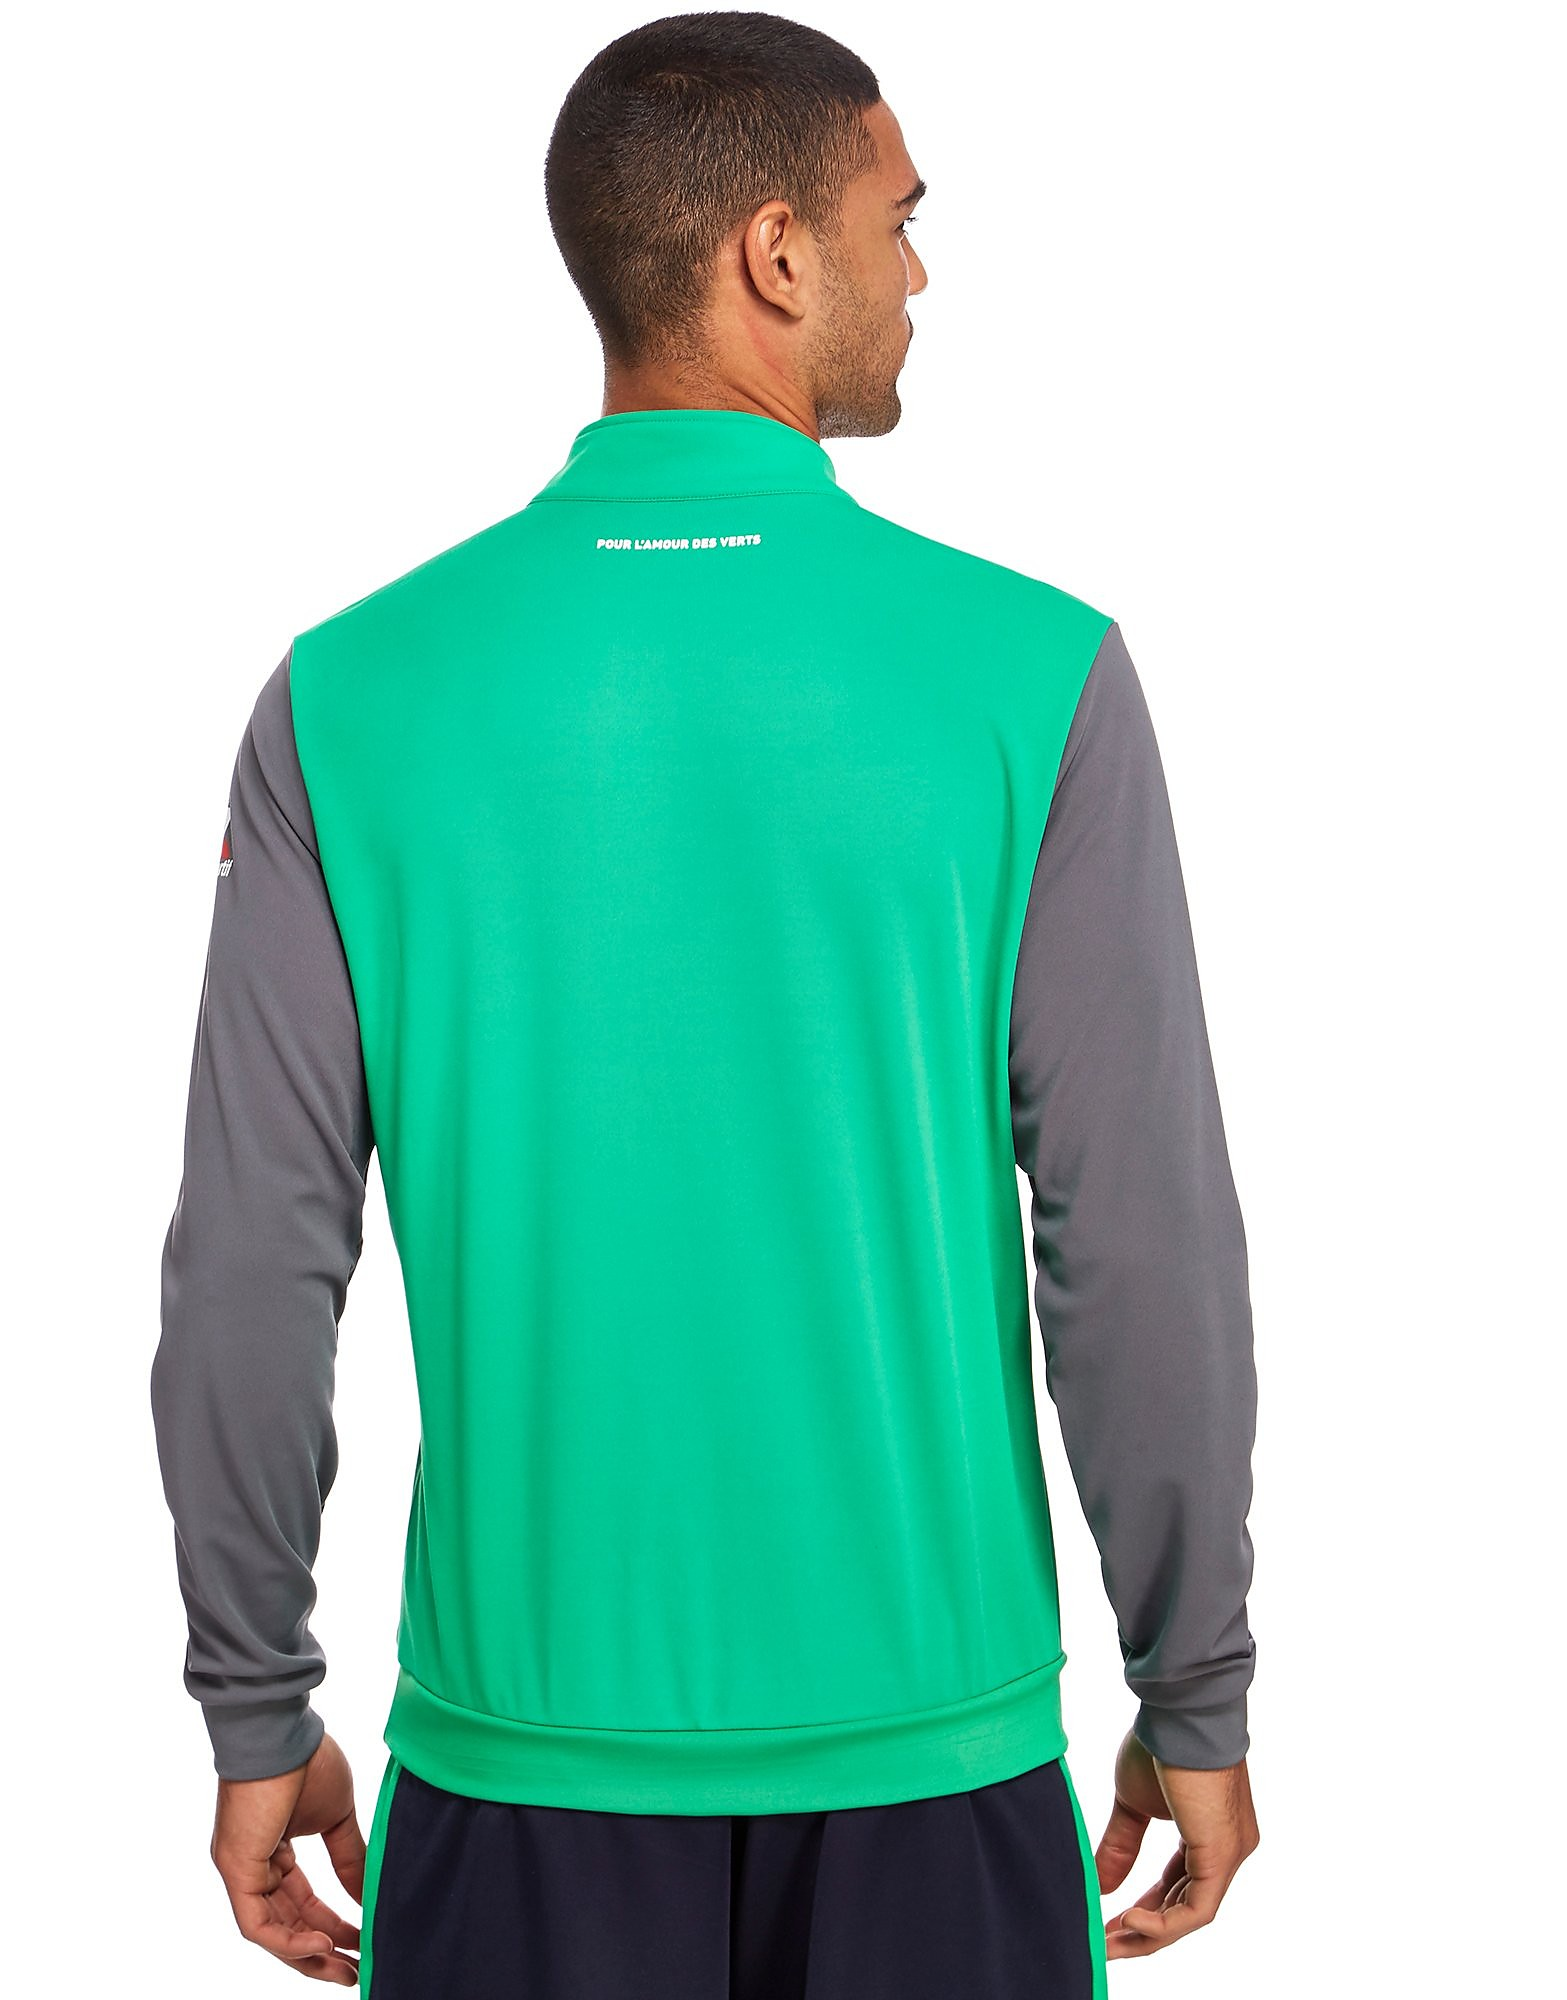 Le Coq Sportif AS Saint Etienne Half Zip Sweatshirt